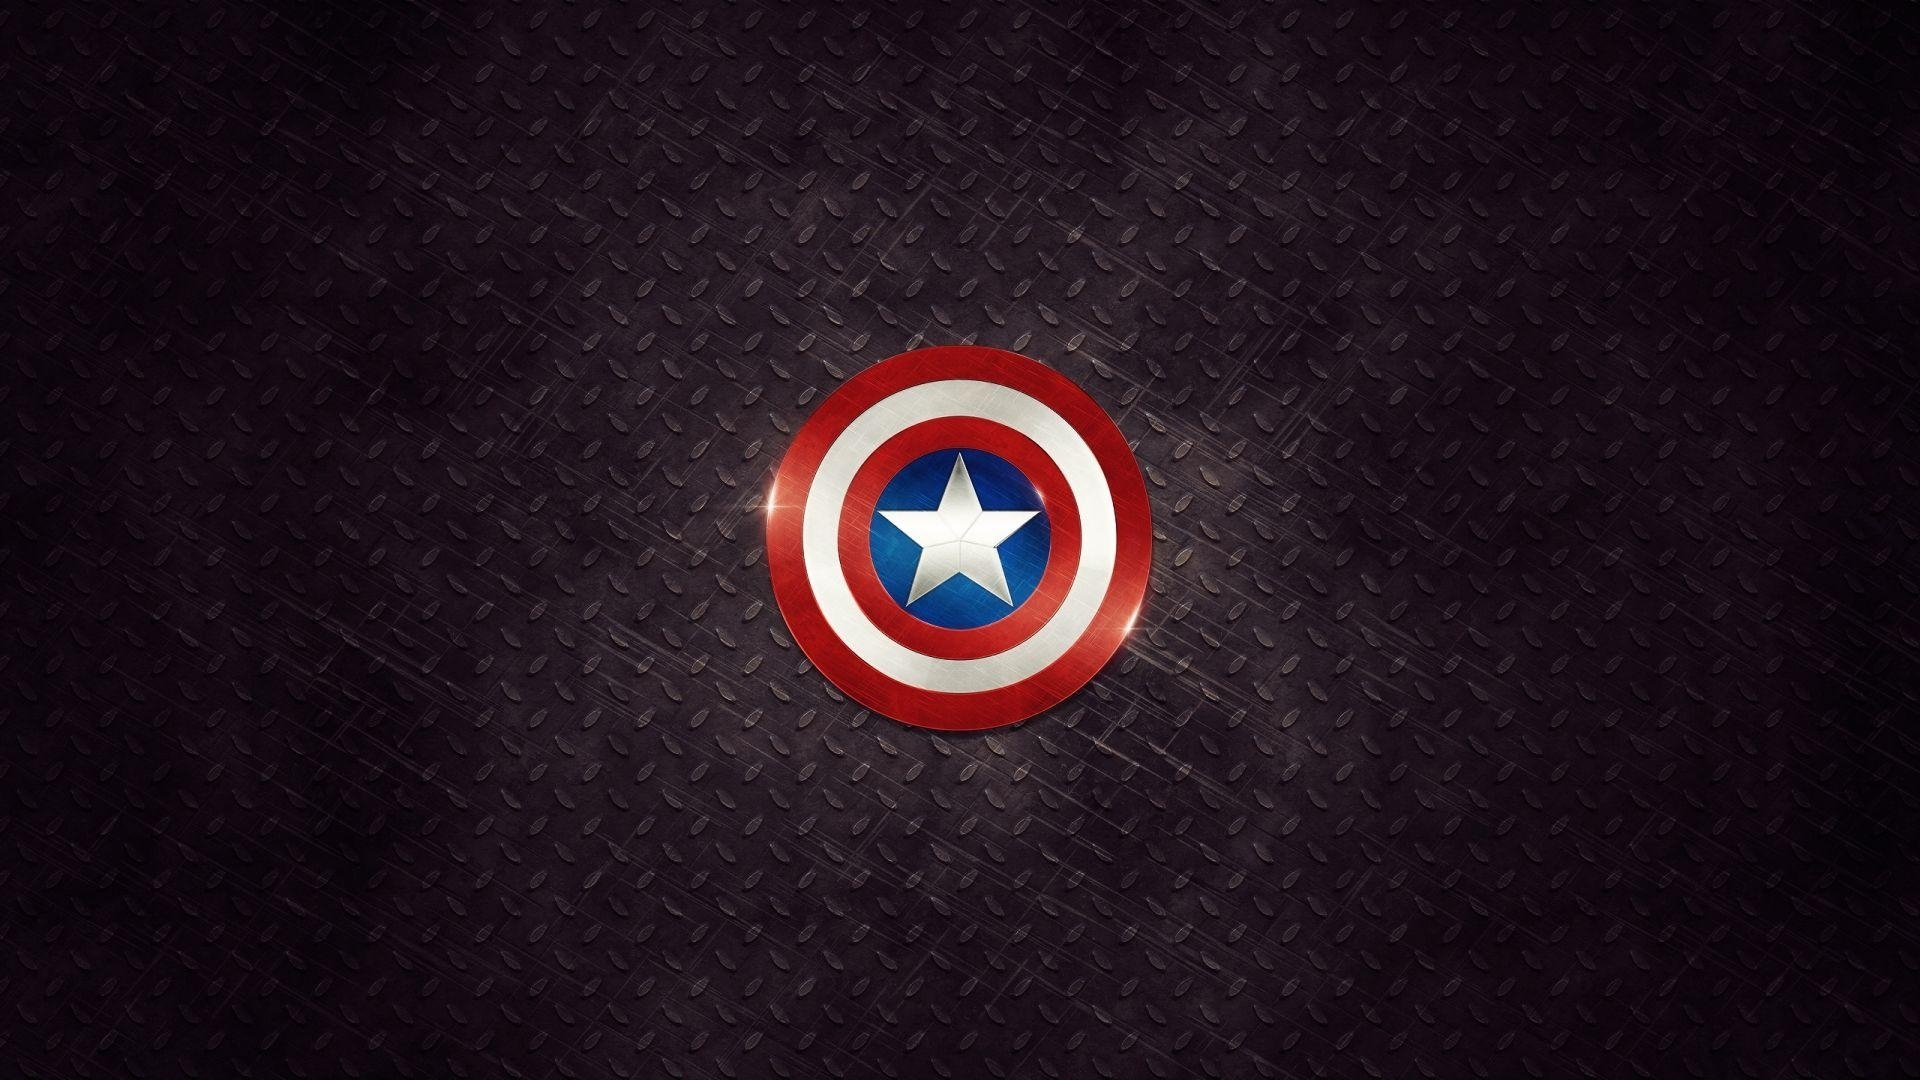 ironman logo wallpapers - wallpaper cave